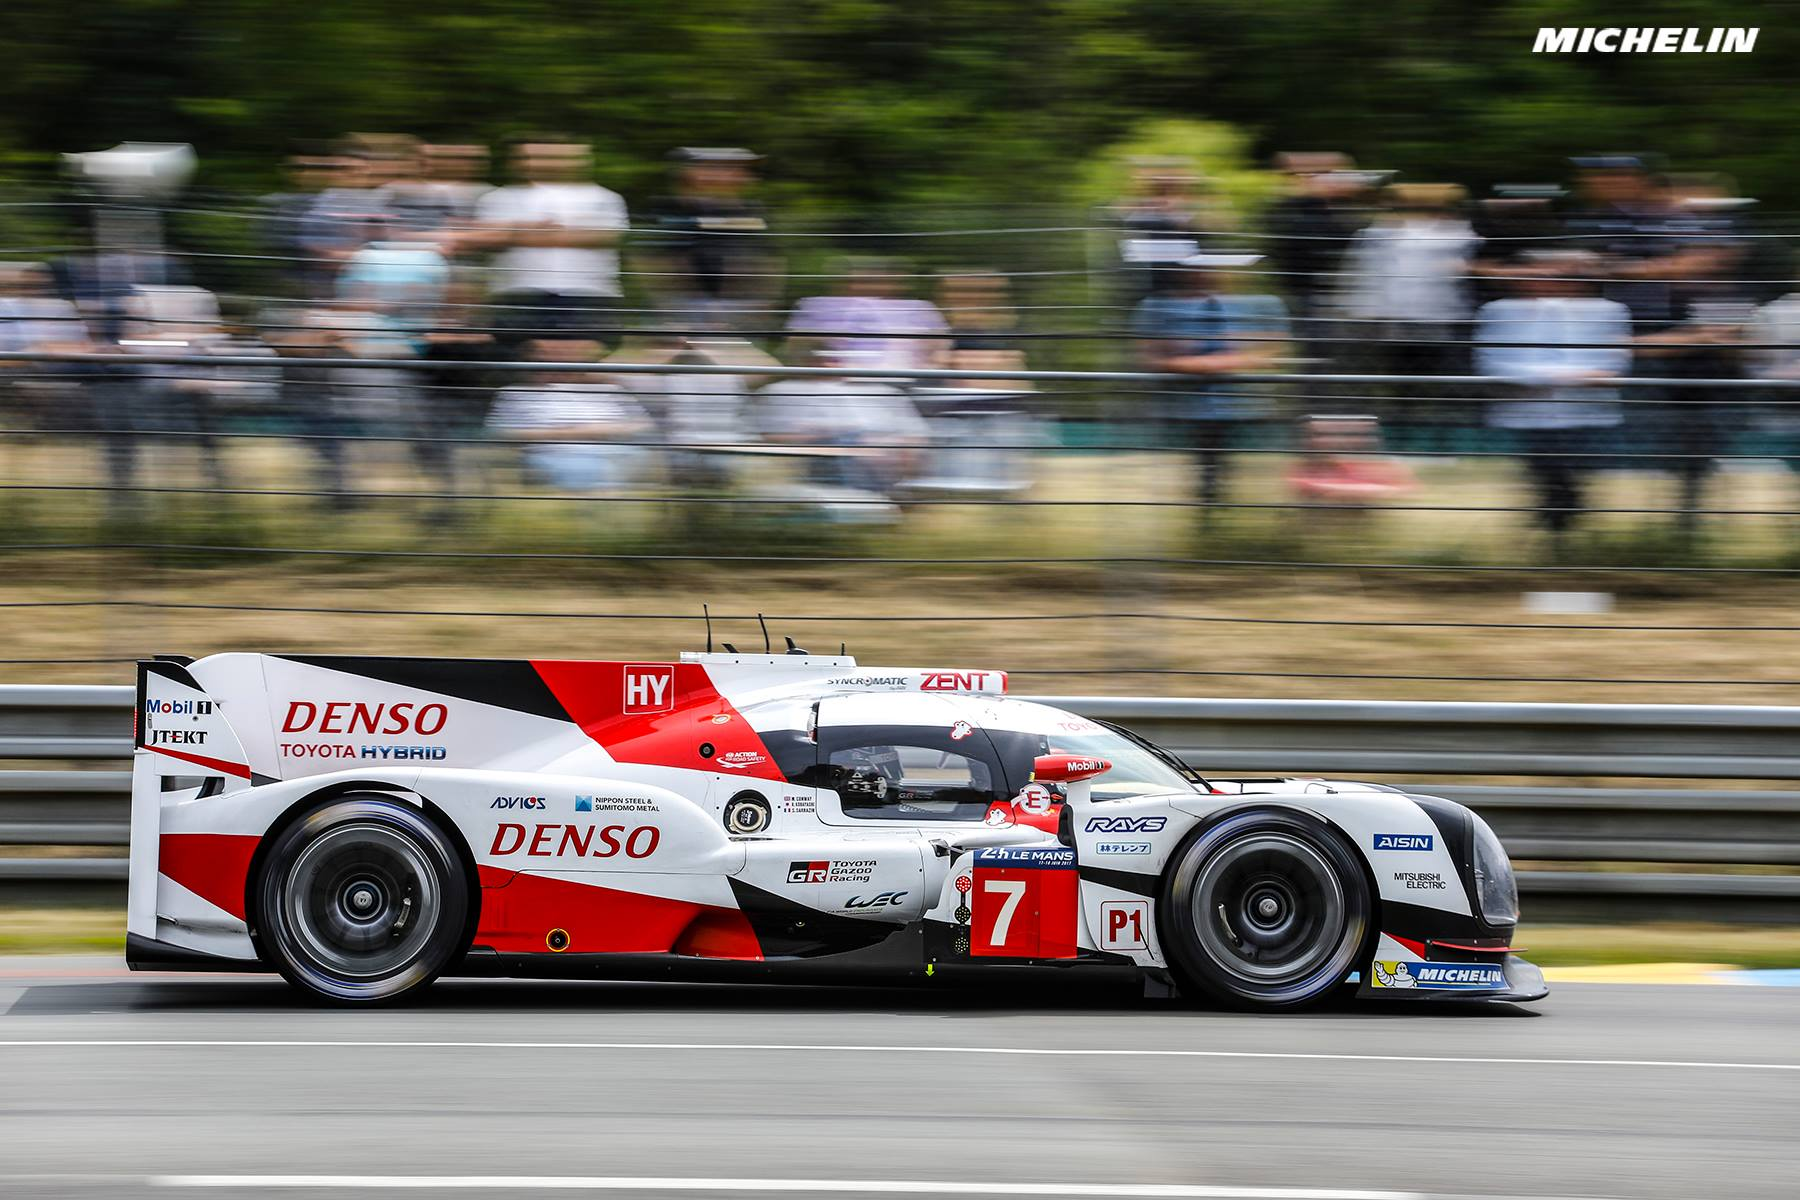 Le Mans 24 Hours: Toyota/Michelin dominates Test Day